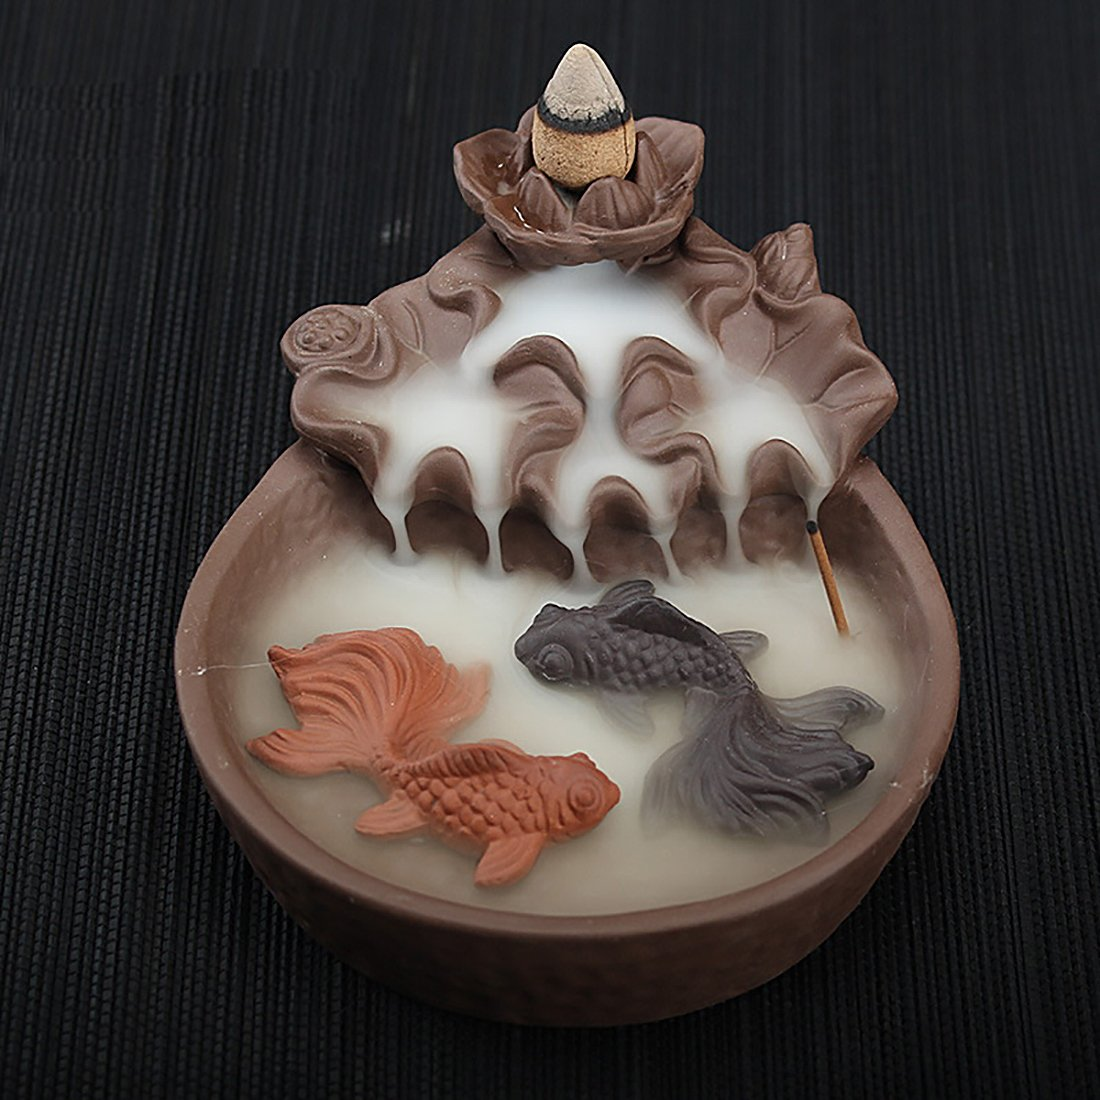 NewEGG Two Fishes Ceramic Purple Clay Smoke Backflow Incense Cone Sticks Burner Holder by NewEGG (Image #2)